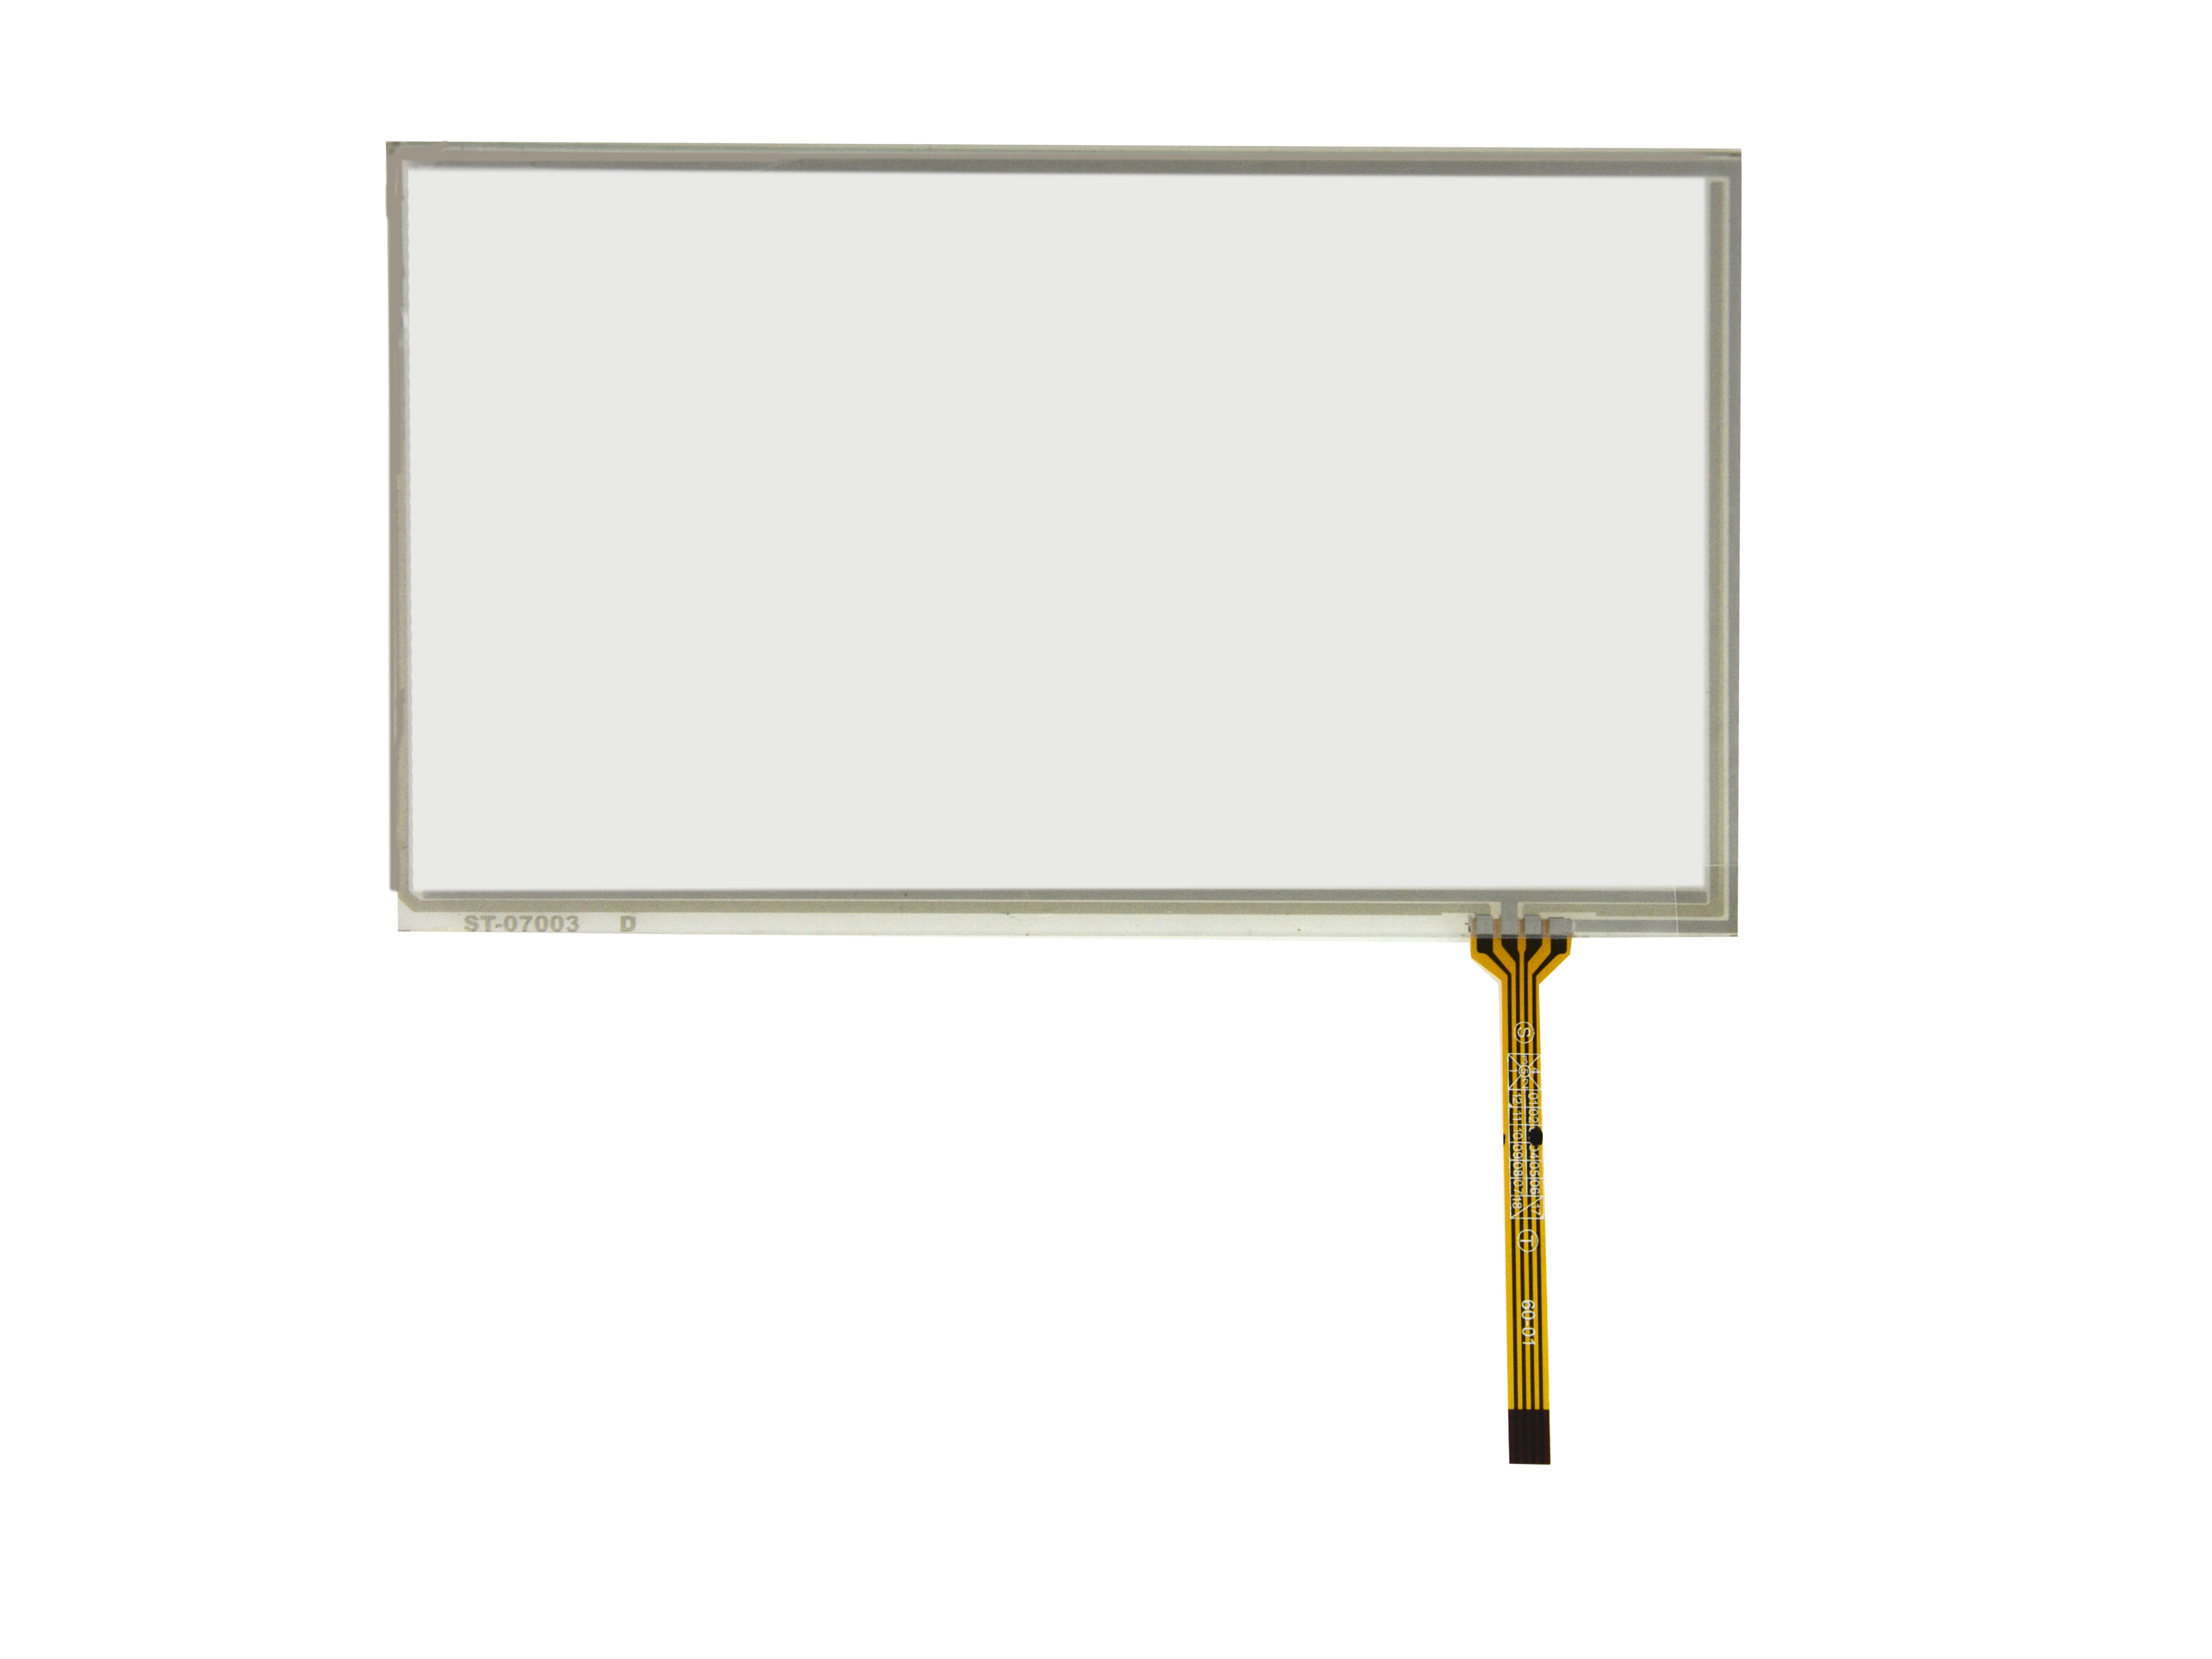 7inch 4 Wire Resistive Touch Panel 164.5 mm x 99.6mm Handwriting Screen GPS